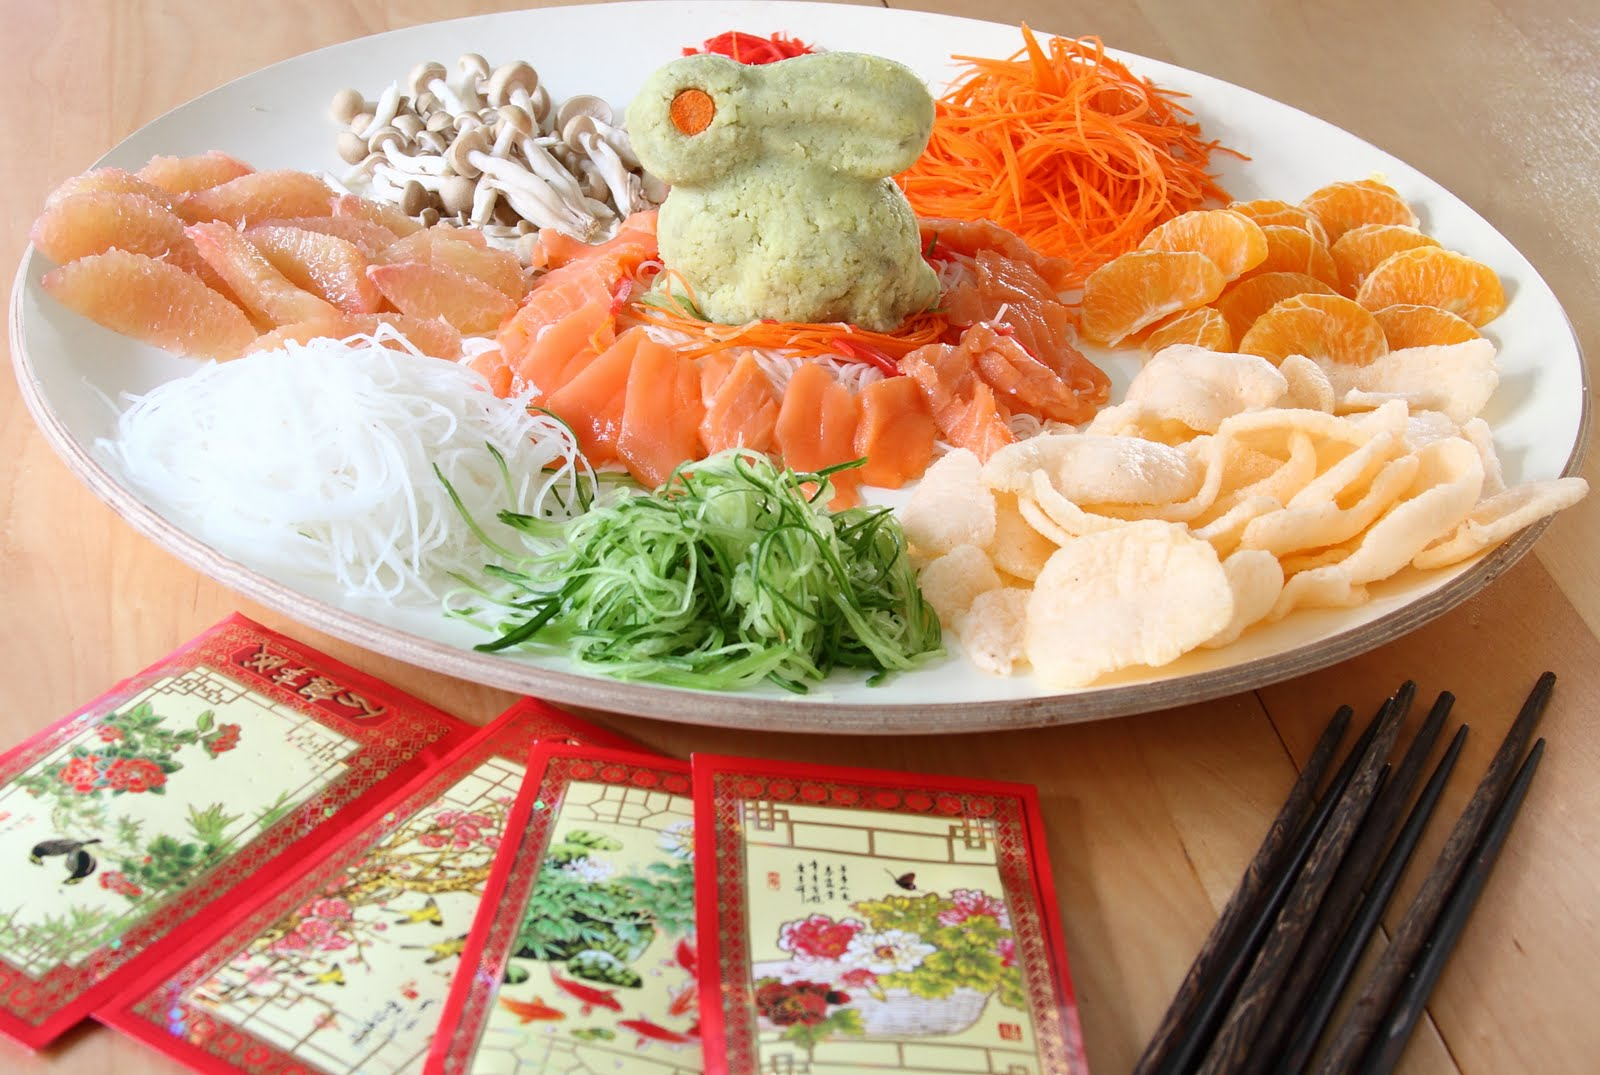 Showfood Chef Yu Sheng Good Luck Food For Chinese New Year